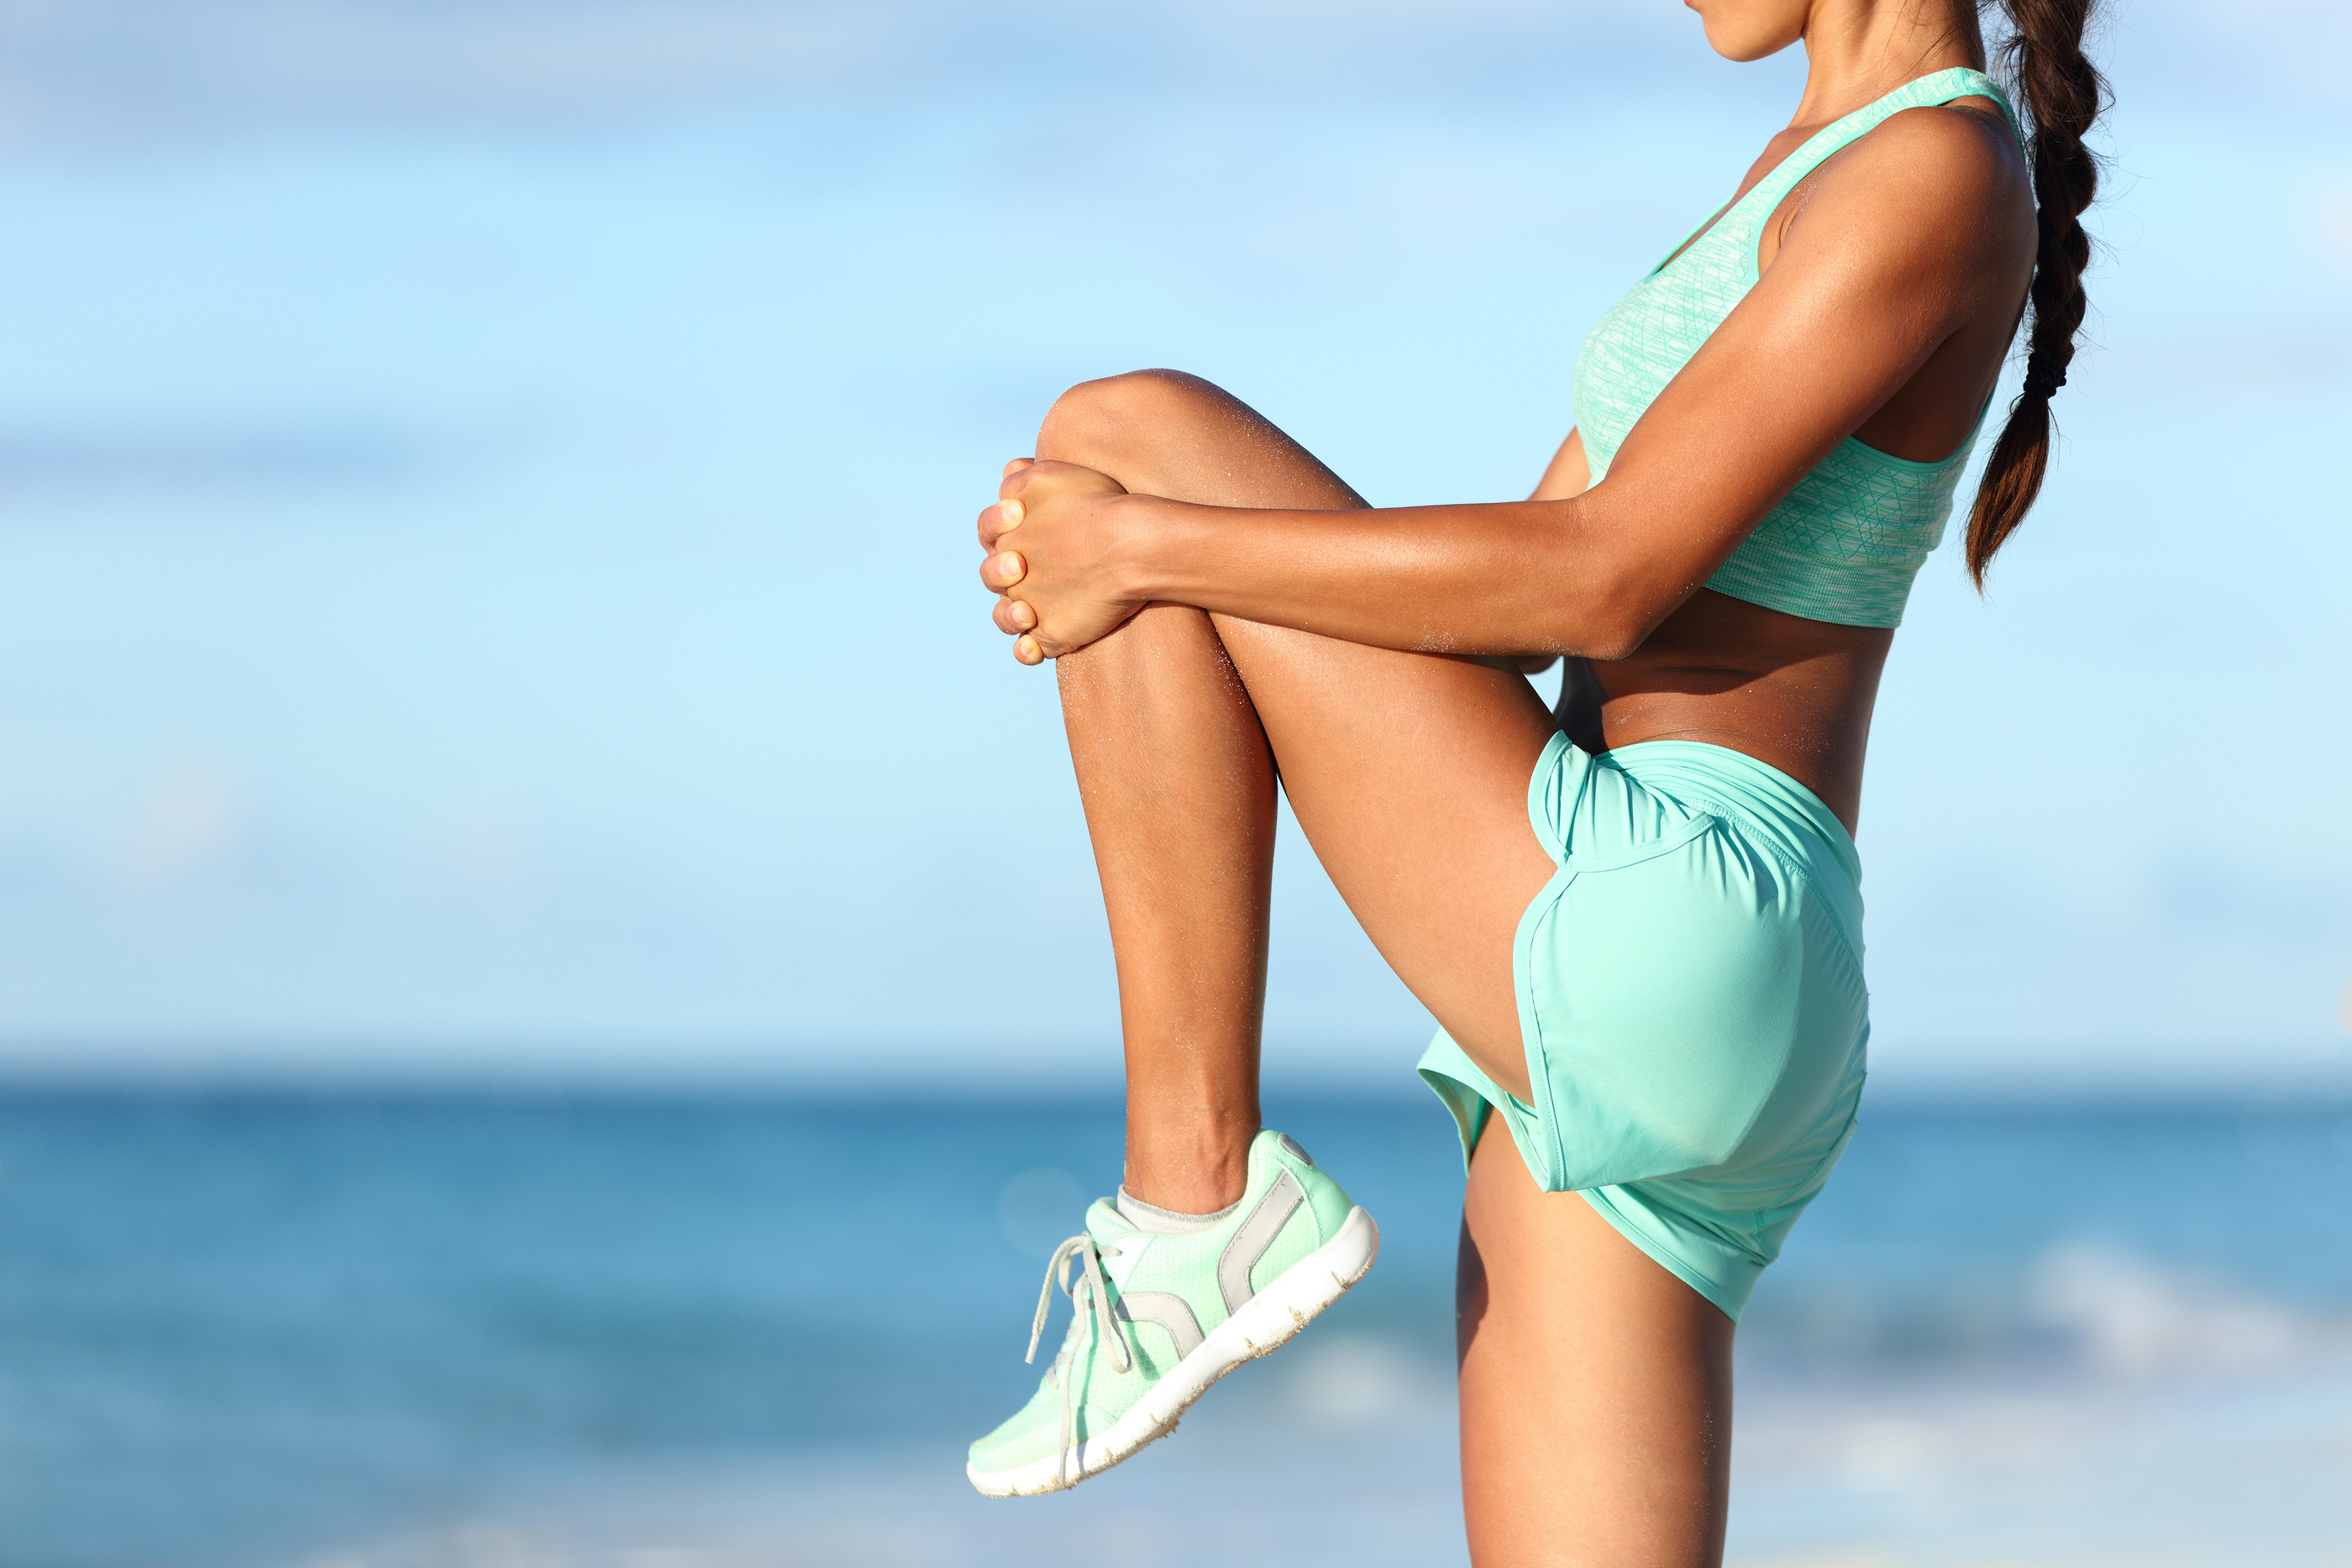 Fitness runner body closeup doing warm-up routine on beach before running, stretching leg muscles wi